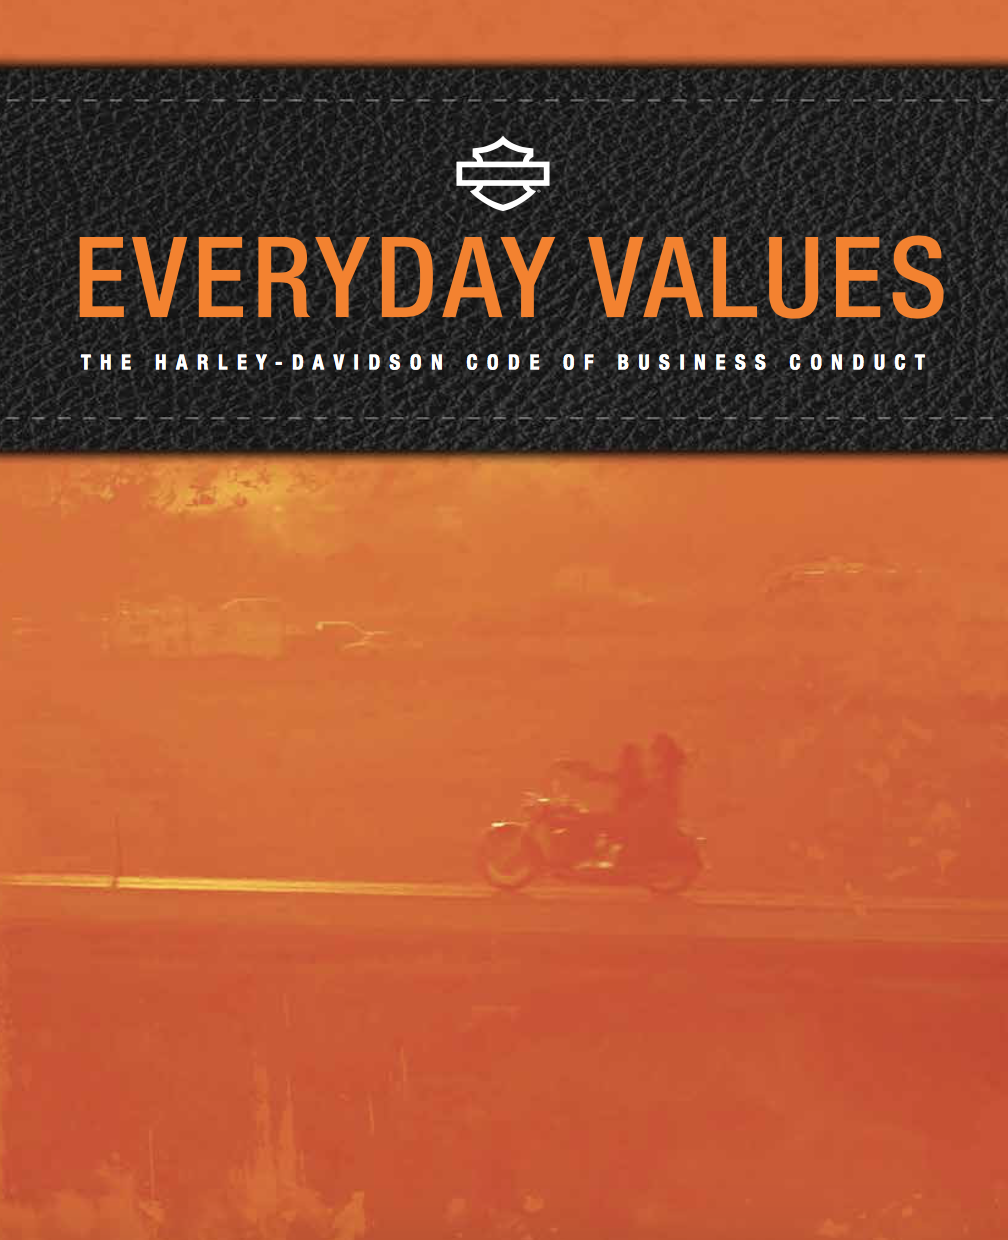 Harley Davidson Values >> Everyday Values The Harley Davidson Code Of Business